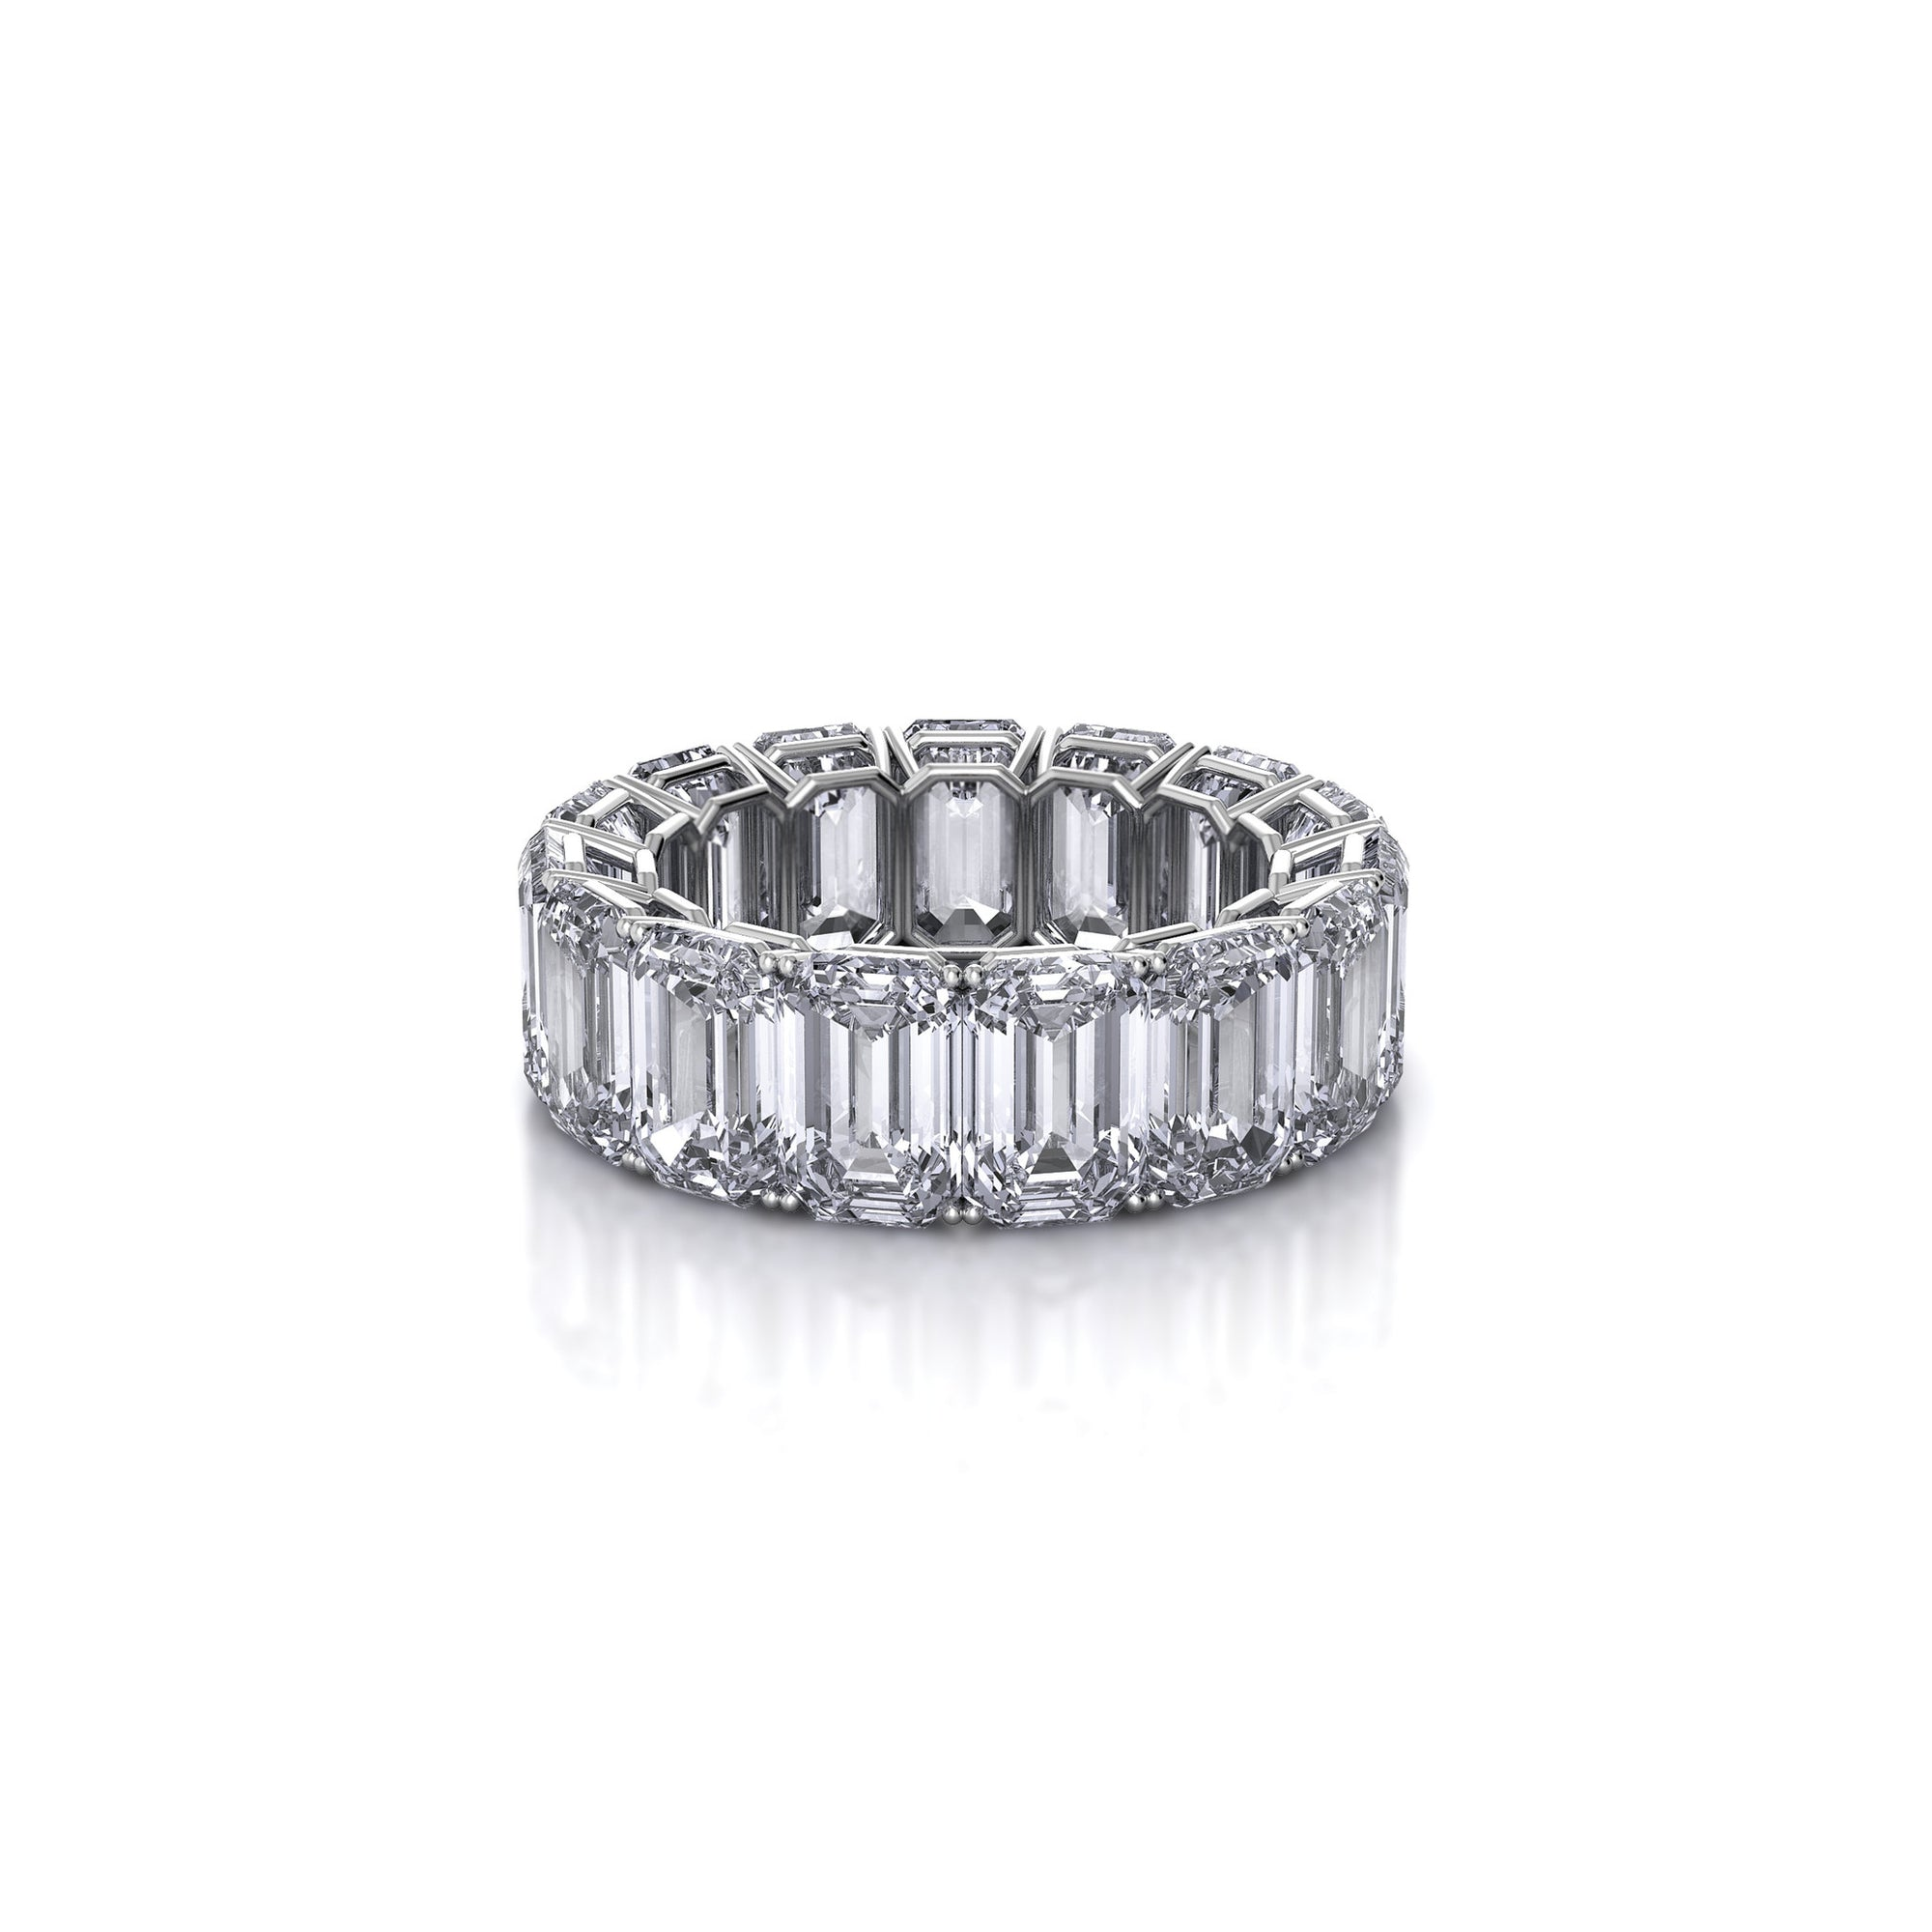 eternity db ring platinum band de beers bands full classic